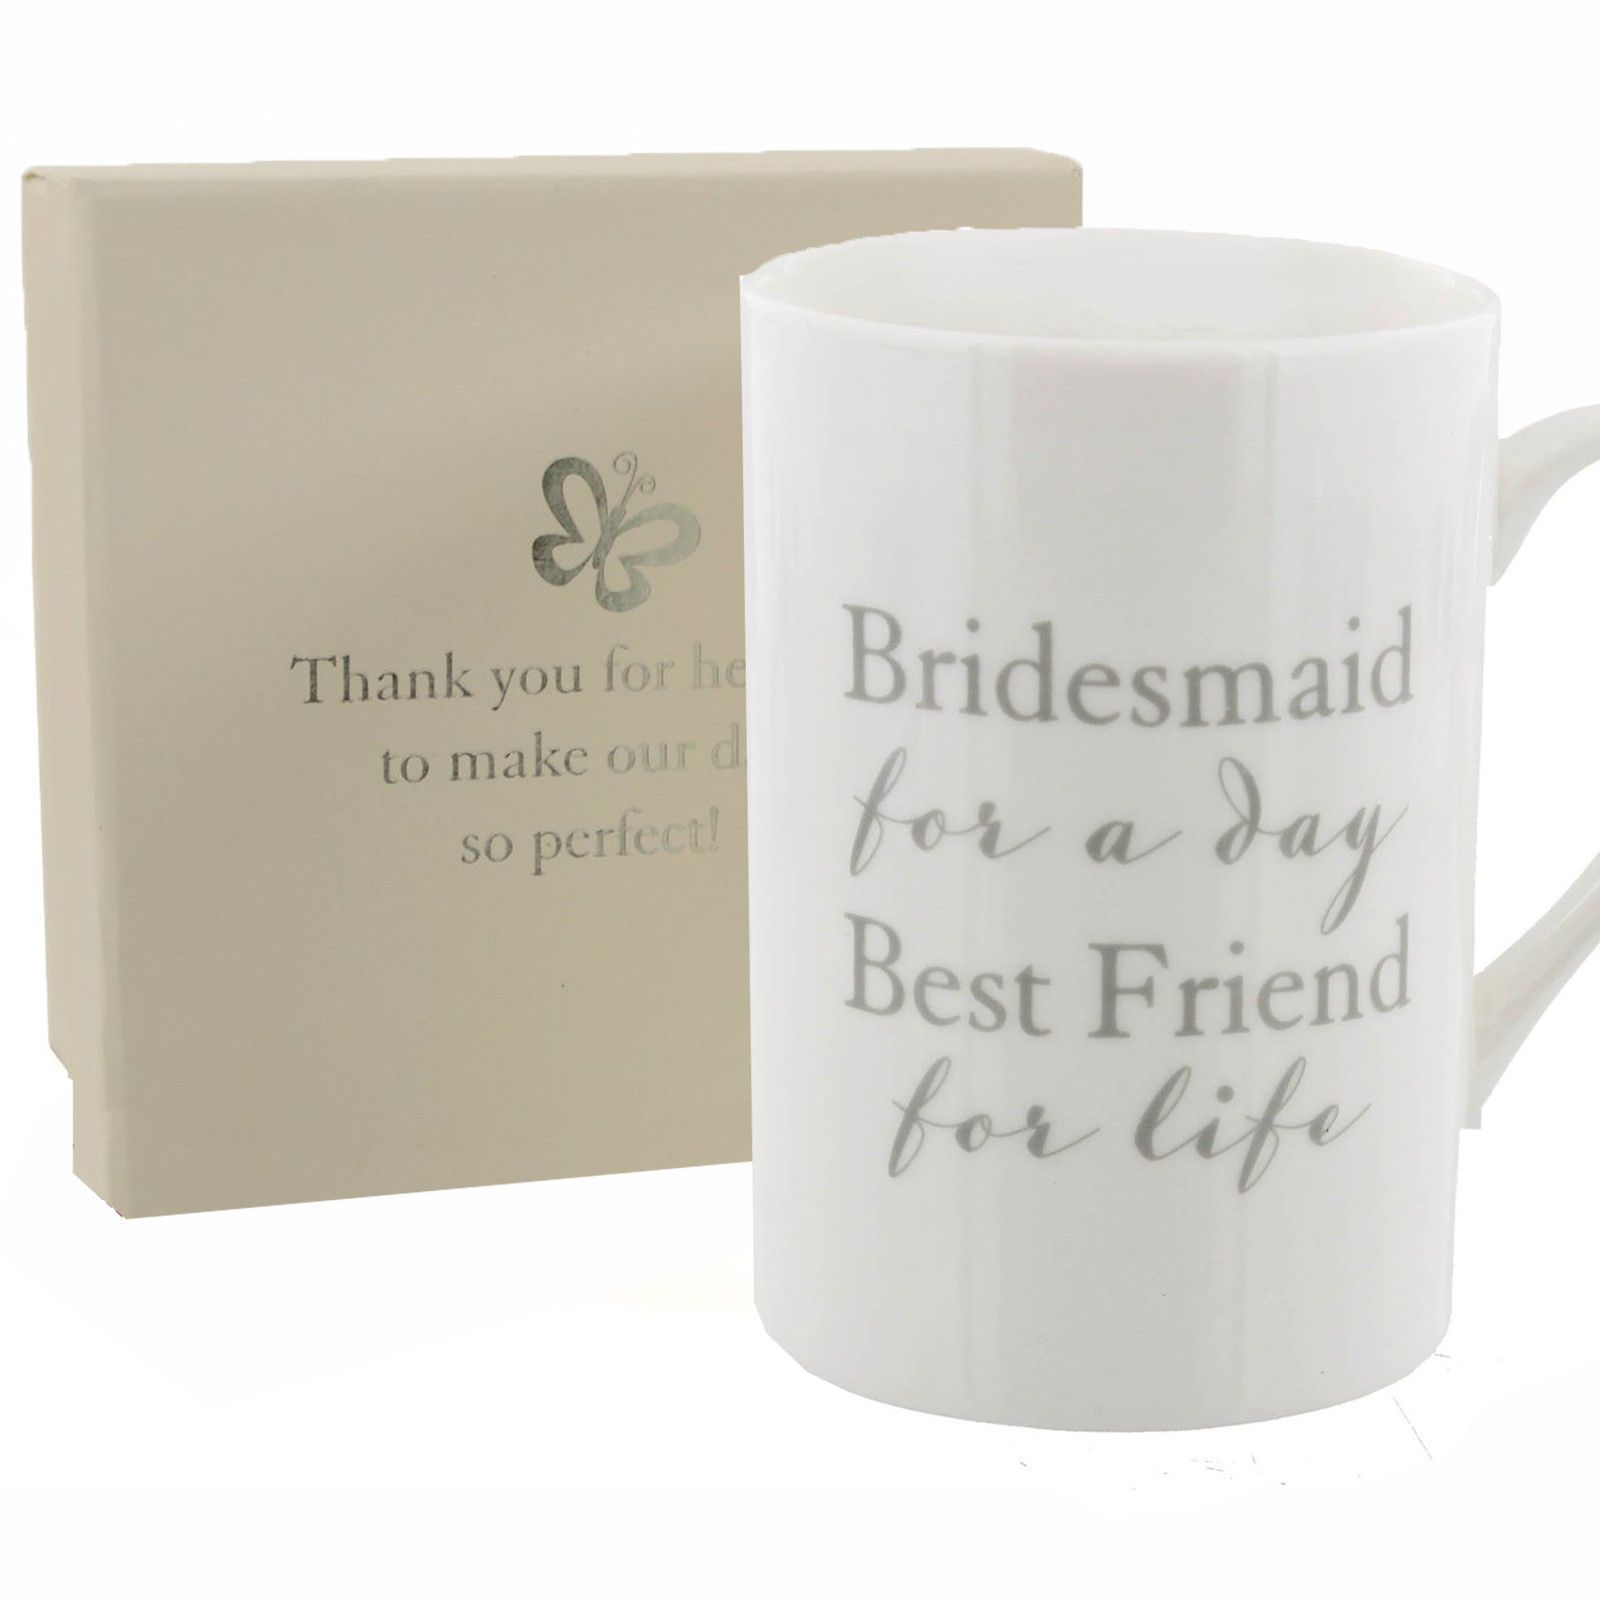 Wedding Bridesmaid Thank You Gift White Cup Mug Inscribed With